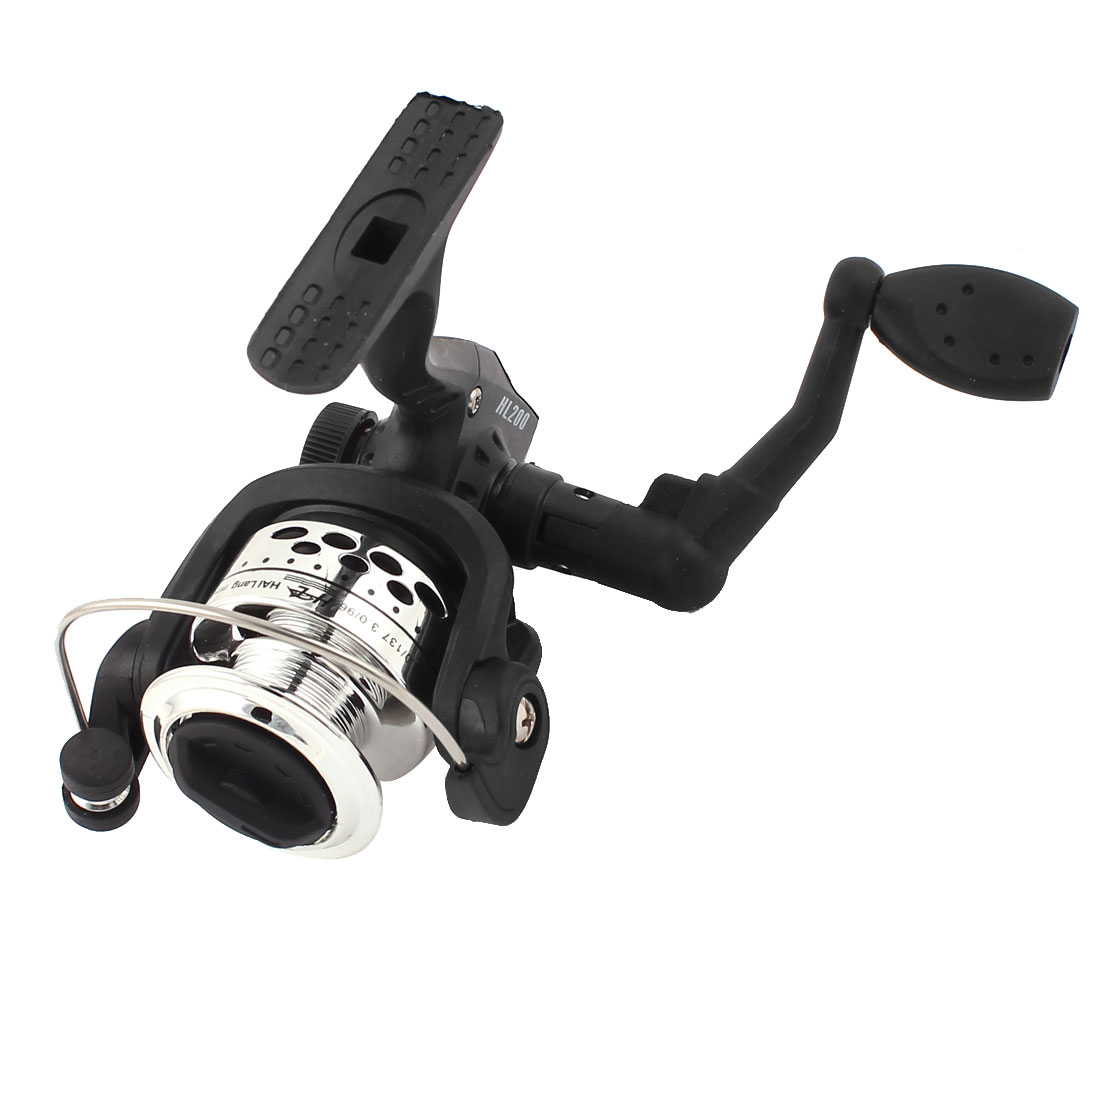 Black 5.2:1 Gear Ratio Angling Fishing Rotating Line Winding Spinning Reel